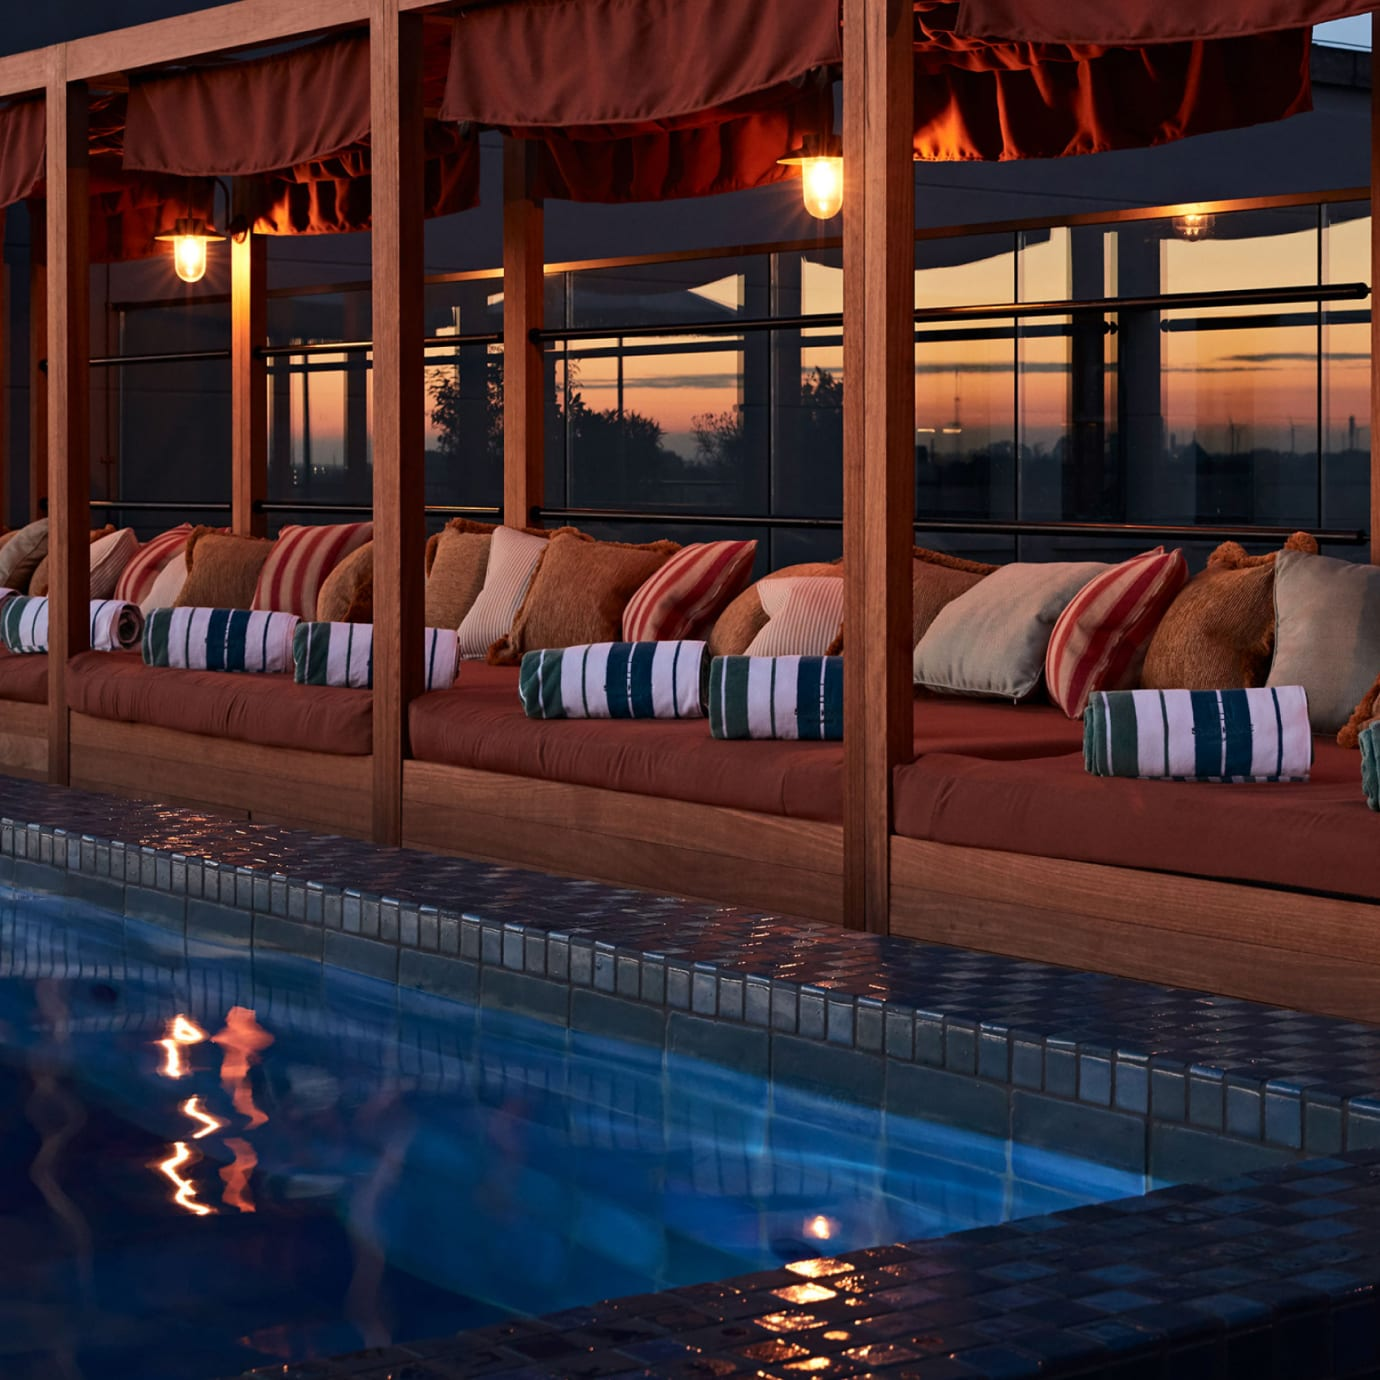 The corner of an outdoor pool and a row of daybeds at sunset.